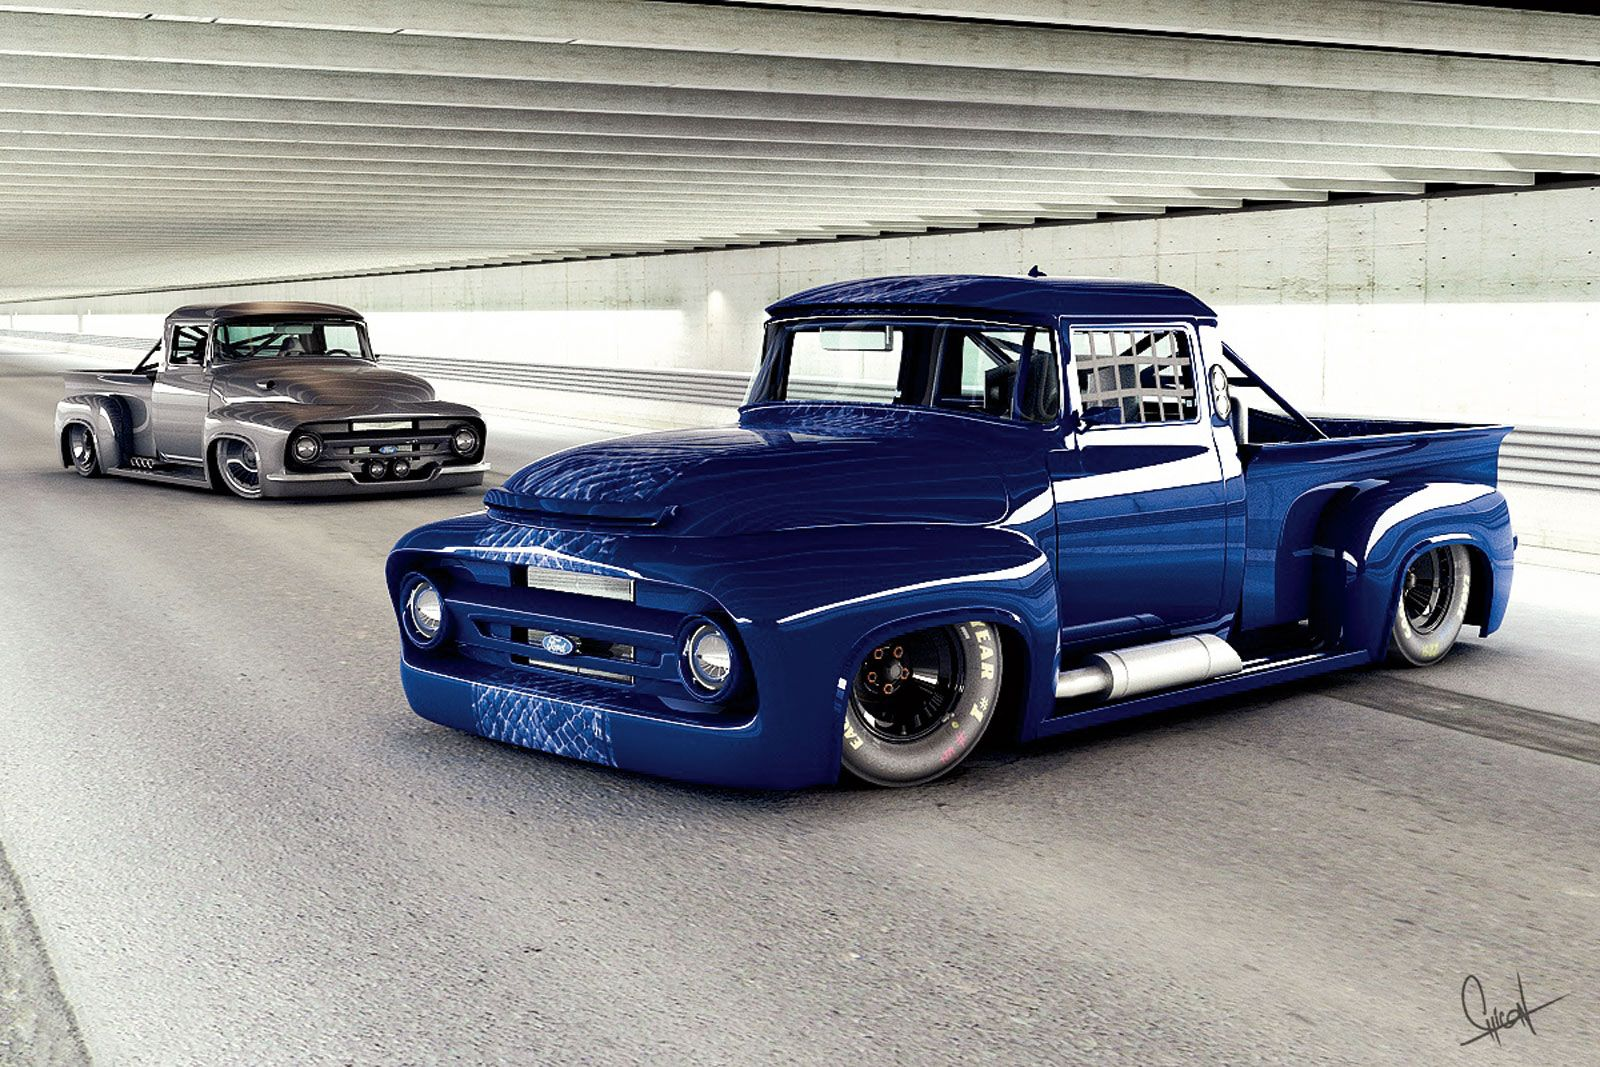 Trucks Street Race Cars That Look Like Rodrigo Chicon Second Generation Ford Photo 5